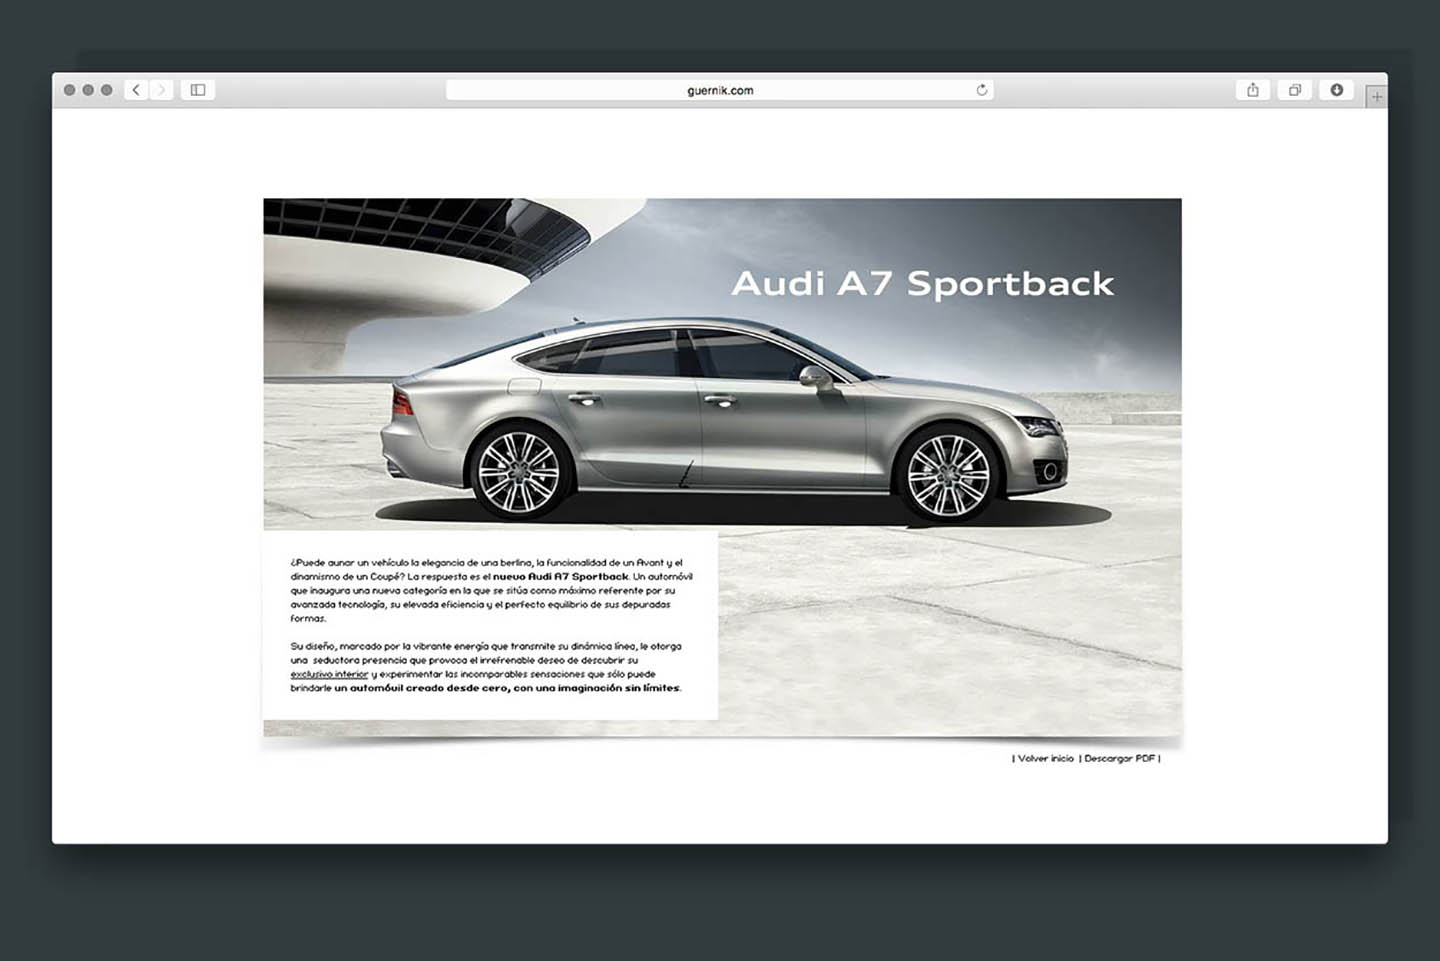 http://www.guernik.com/wp-content/uploads/2015/04/Web_Guernik_UI_Audi_Sydney_0015_Screen-Shot-2015-06-19-at-7.23.46-pm1.jpg